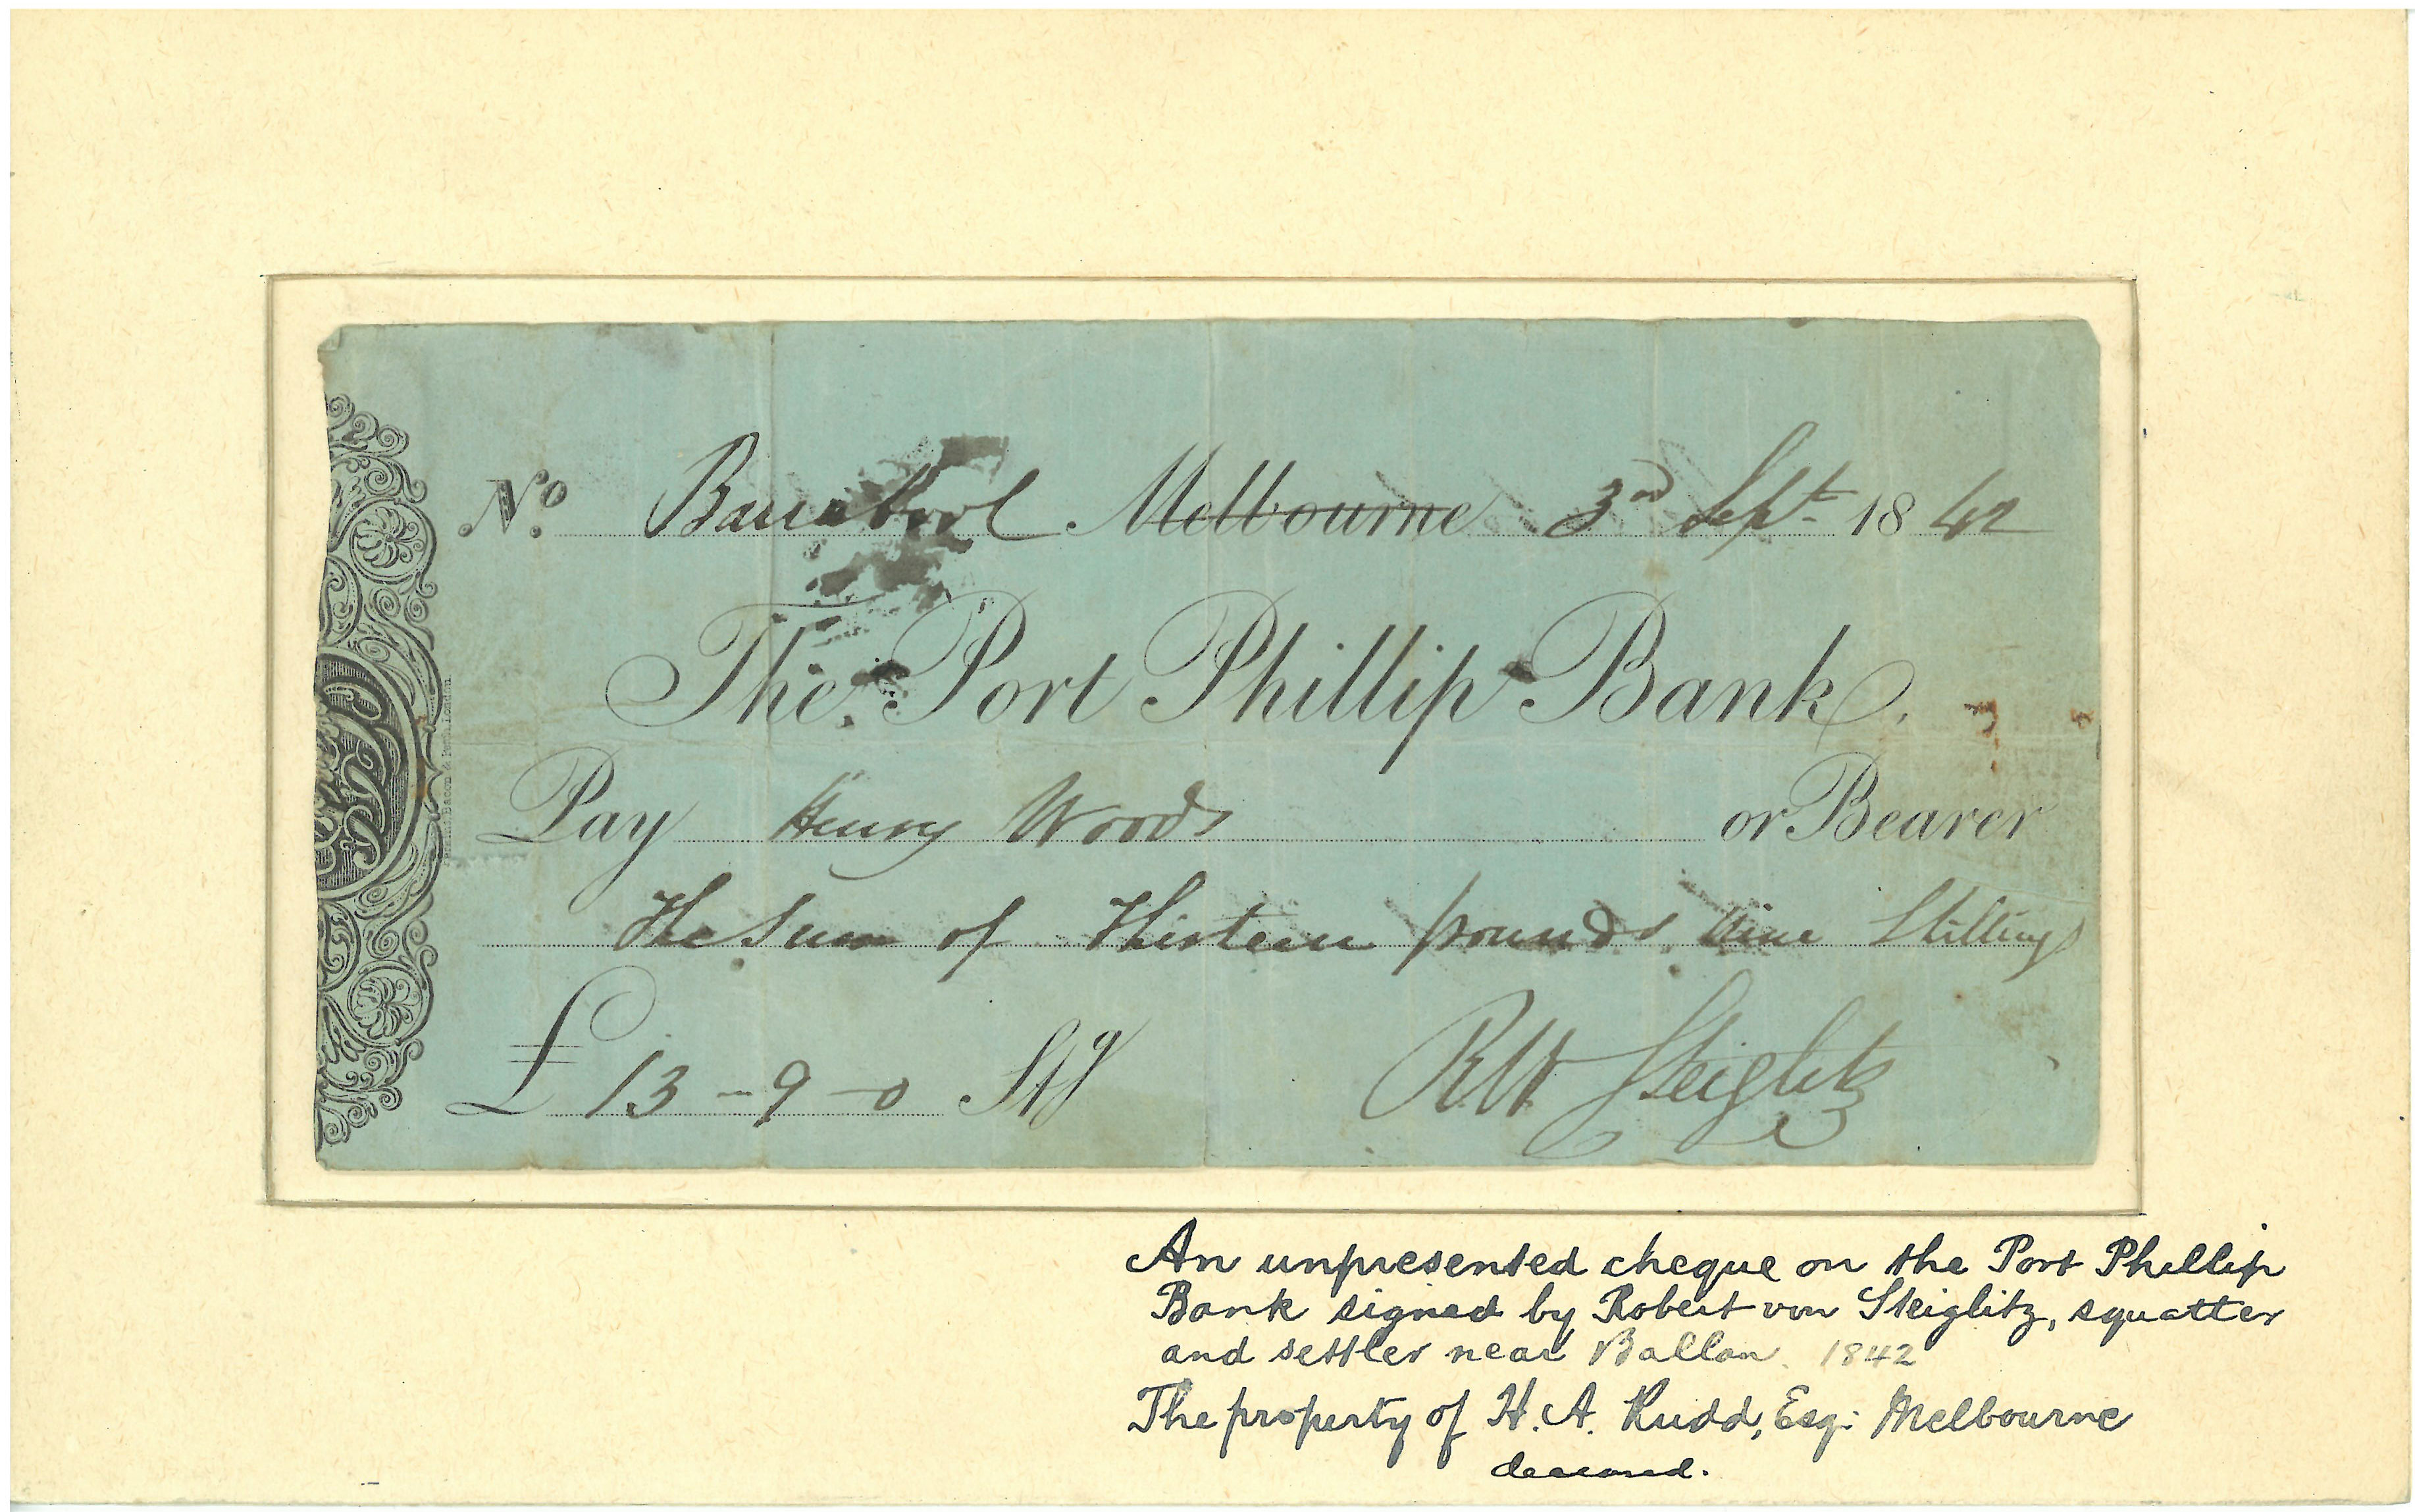 An unpresented Port Phillip Bank cheque dated 1842